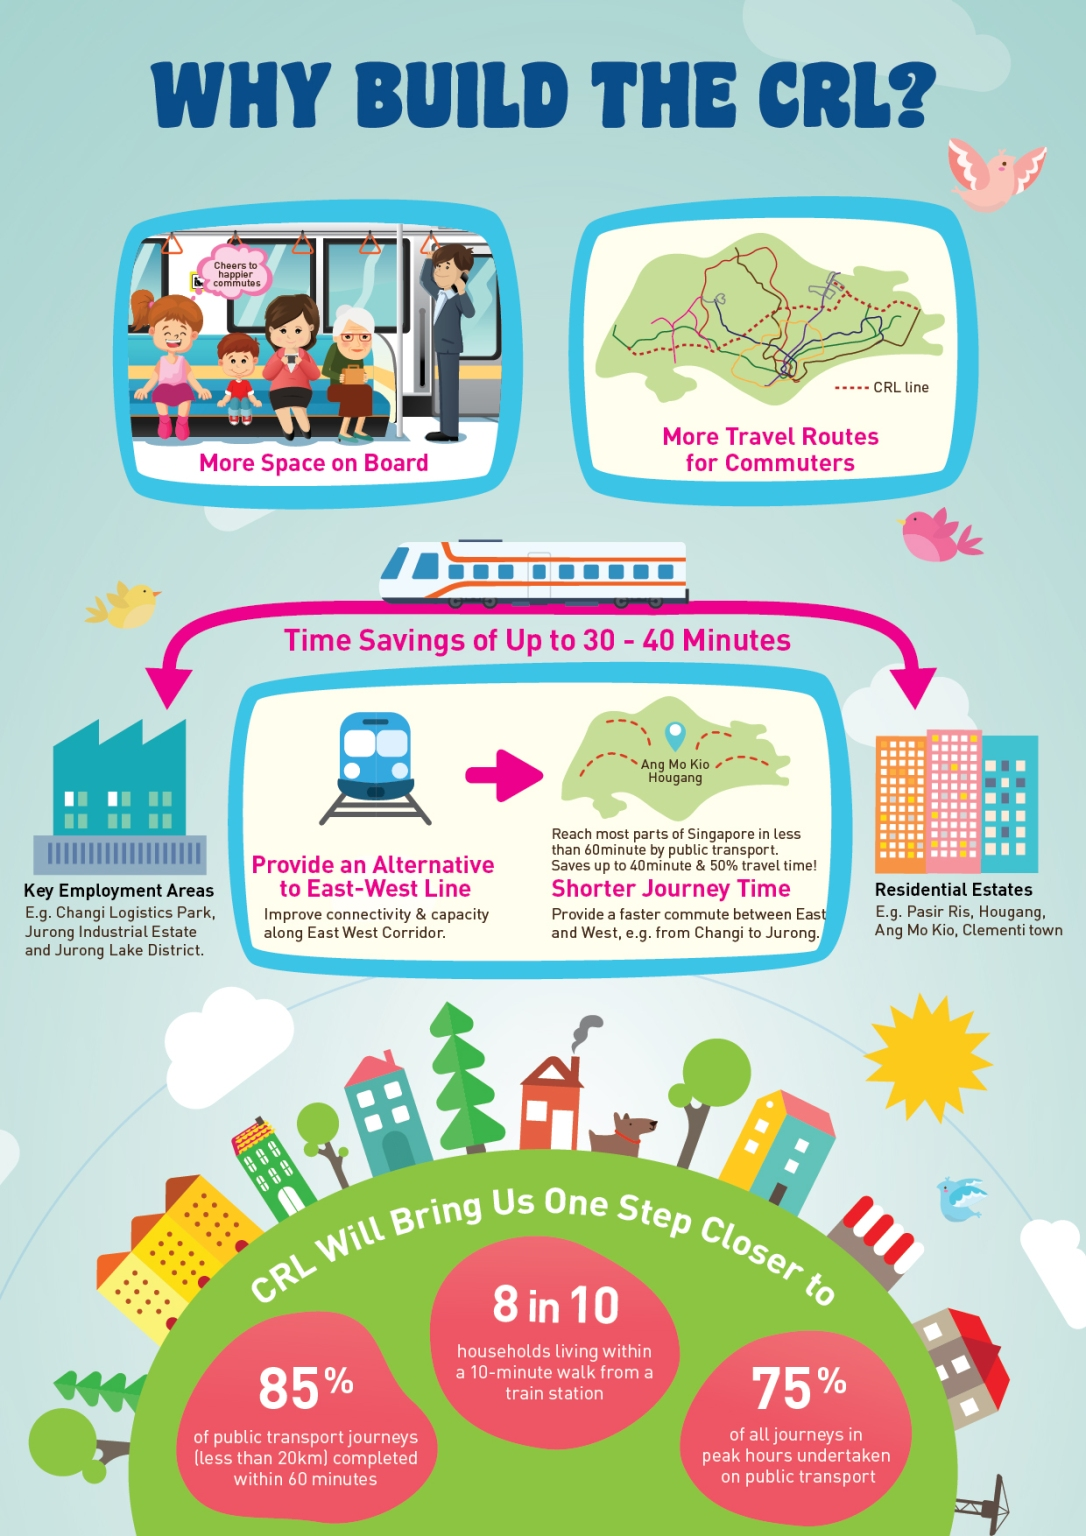 Why Cross Island MRT Line?